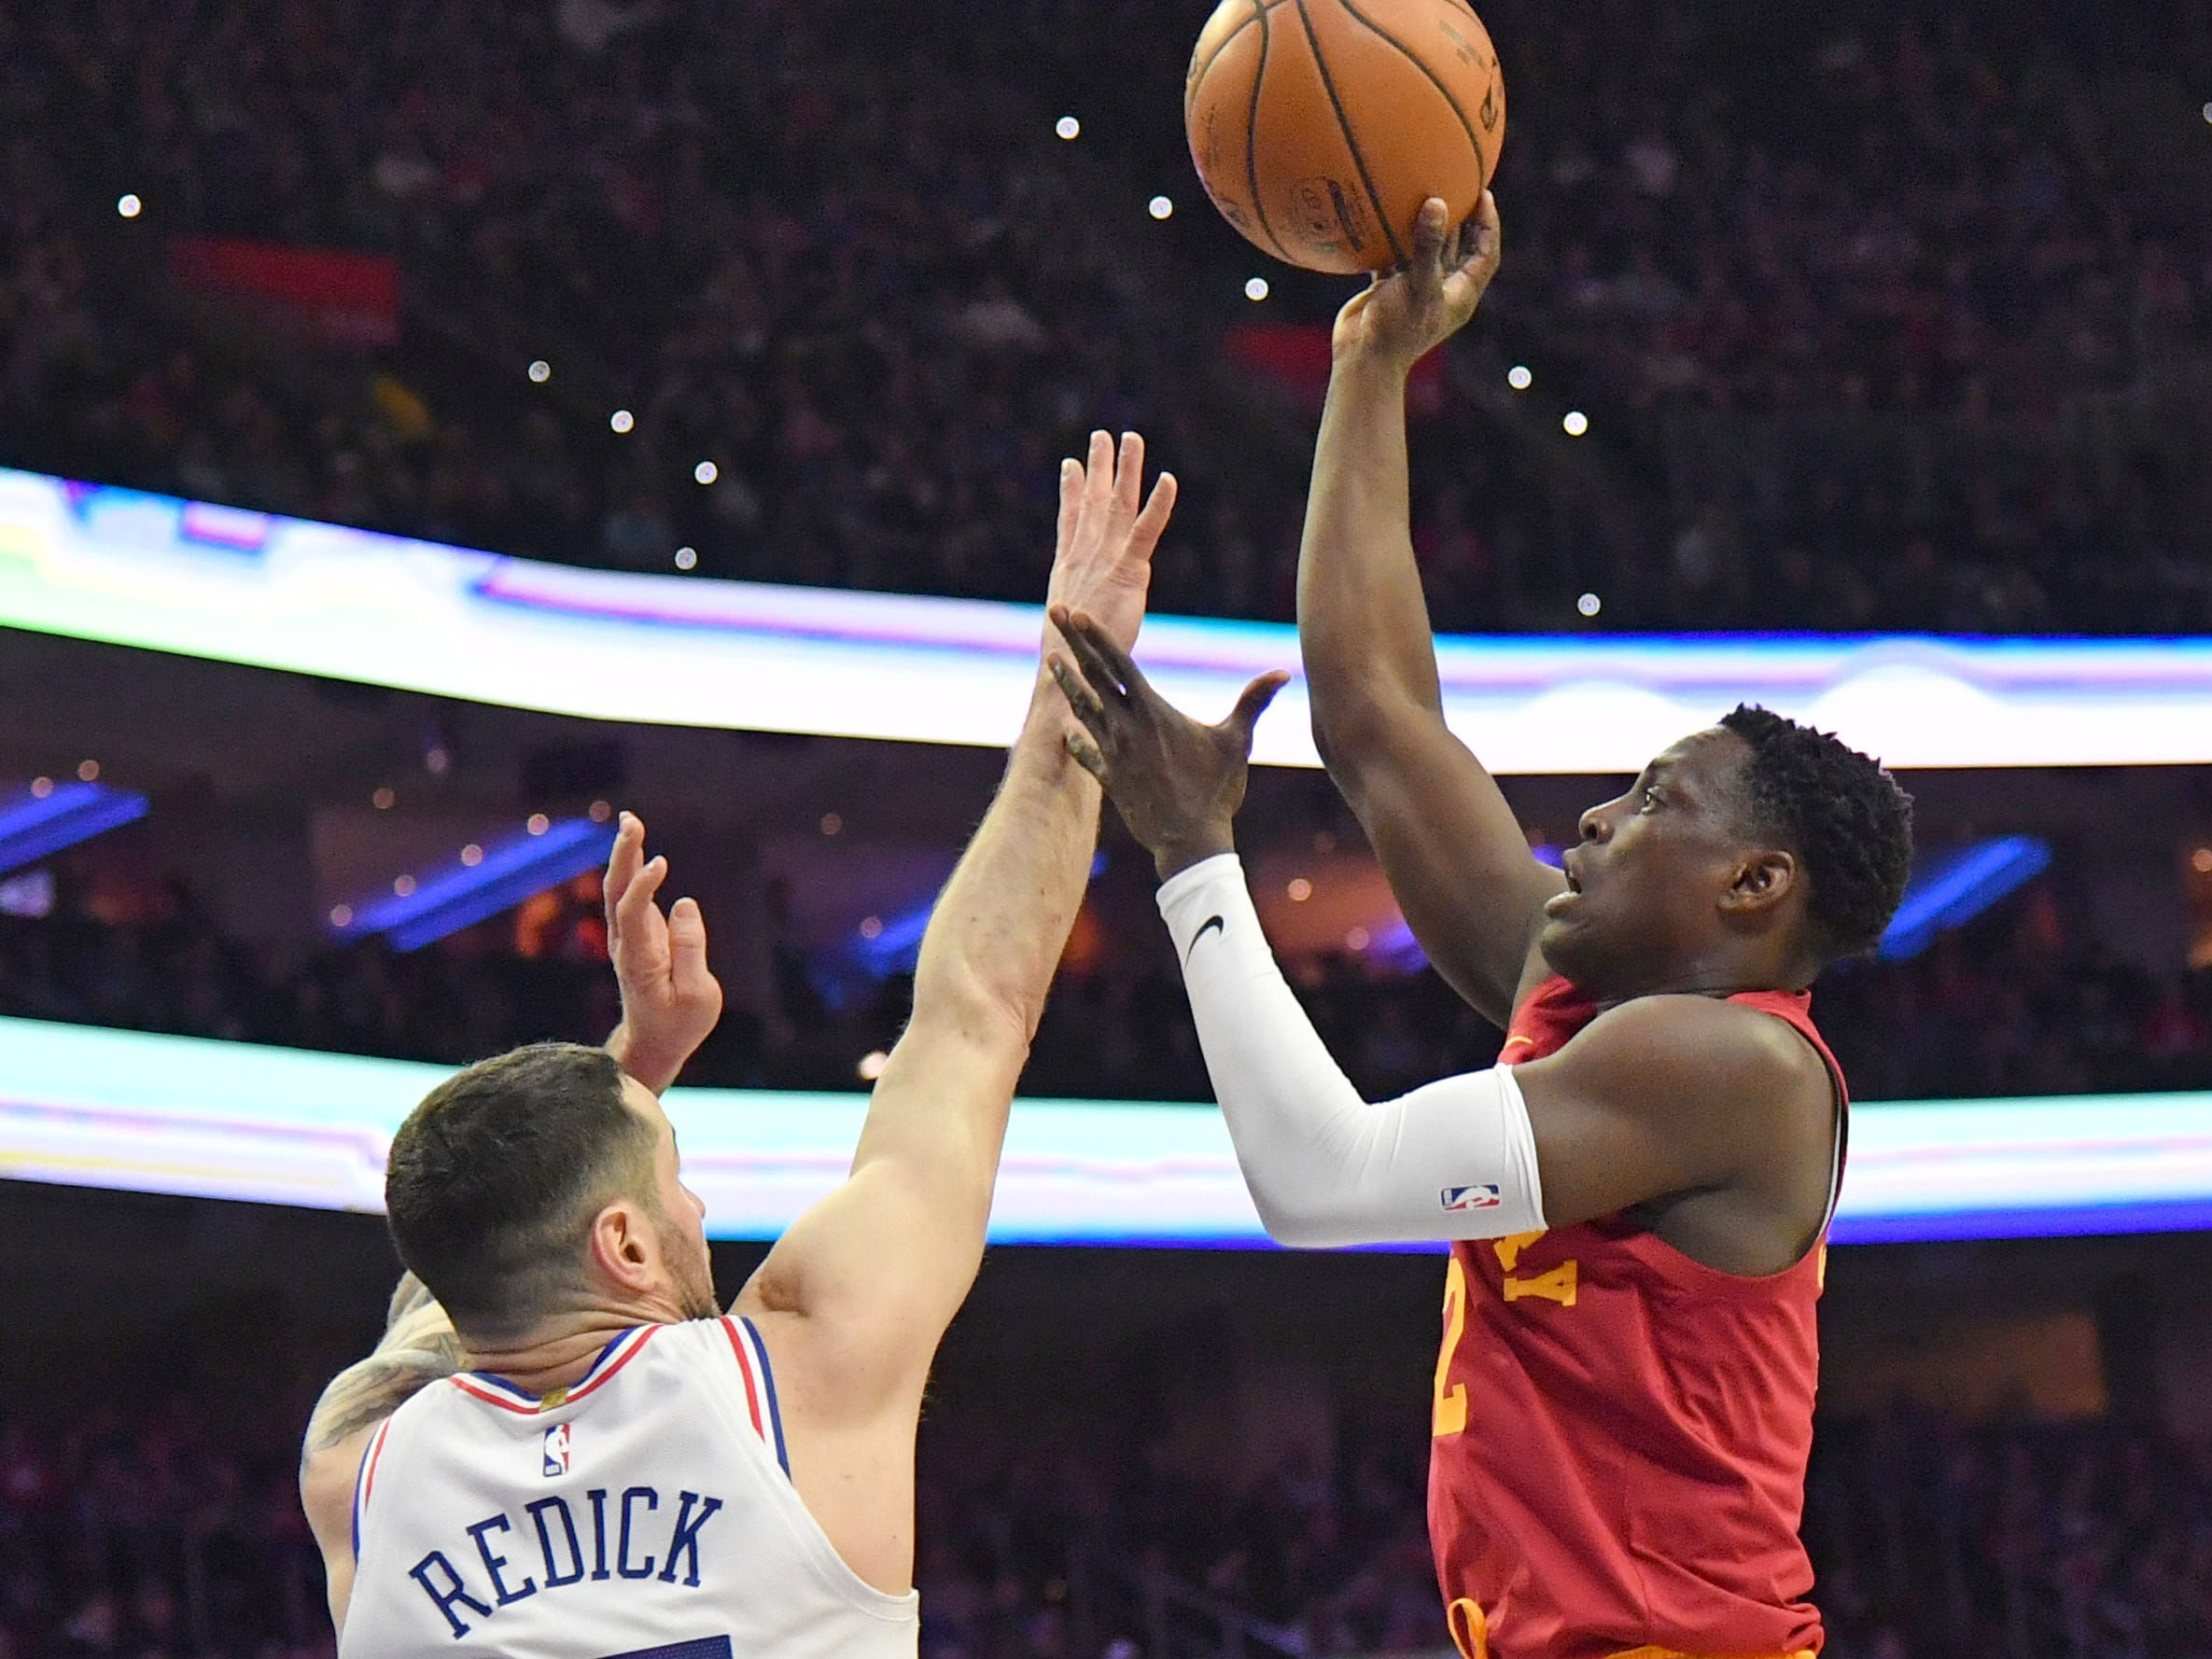 Mar 10, 2019; Philadelphia, PA, USA; Indiana Pacers guard Darren Collison (2) shoots over Philadelphia 76ers guard JJ Redick (17) during the first quarter at Wells Fargo Center.